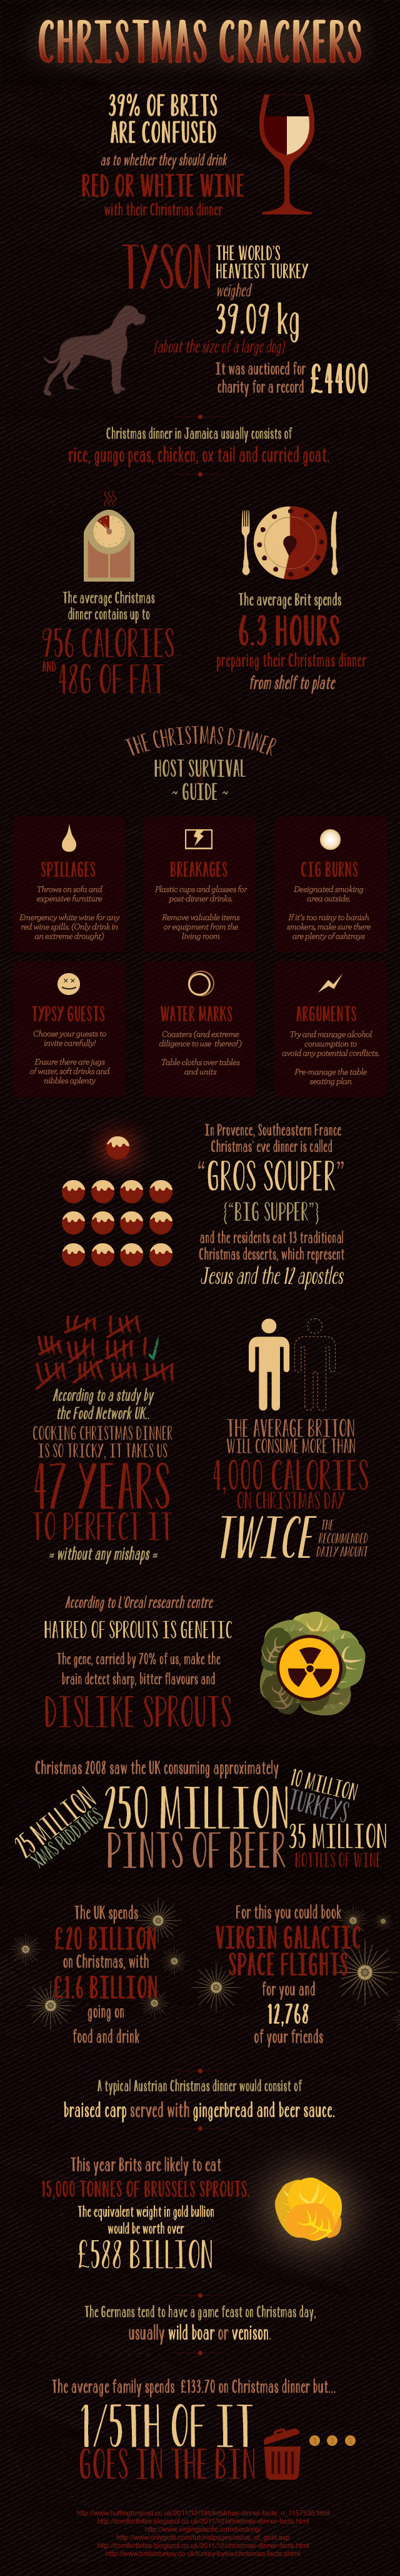 Christmas-Crackers-Fun-Facts-Infographic